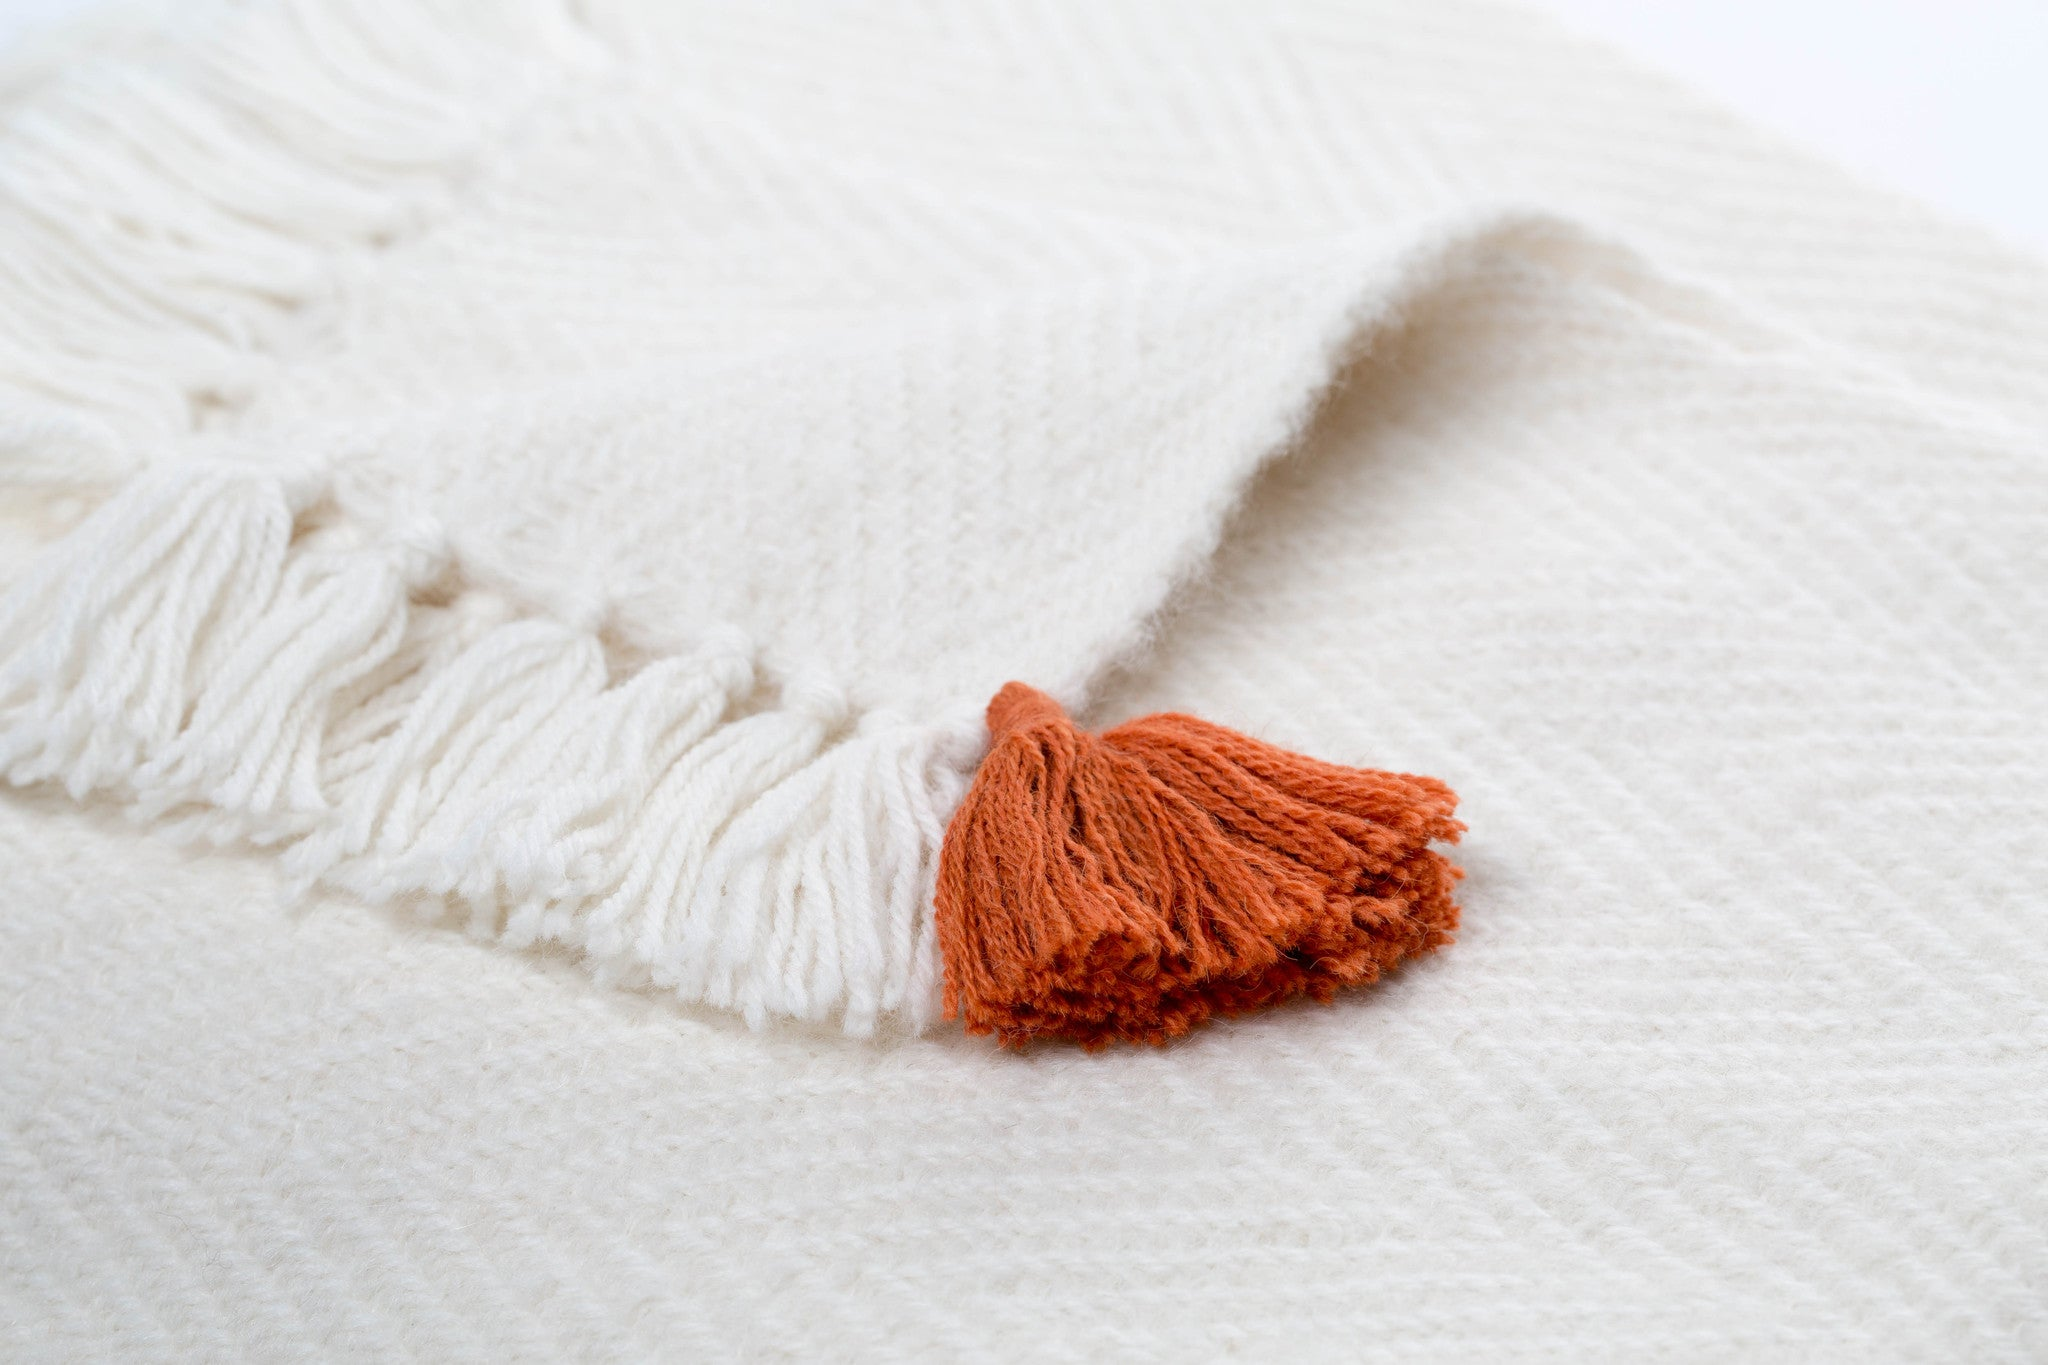 Handmade alpaca throw made in Peru. Proceeds support Christy Turlington's Every Mother Counts organization. Give a gift with purpose this Mother's Day.